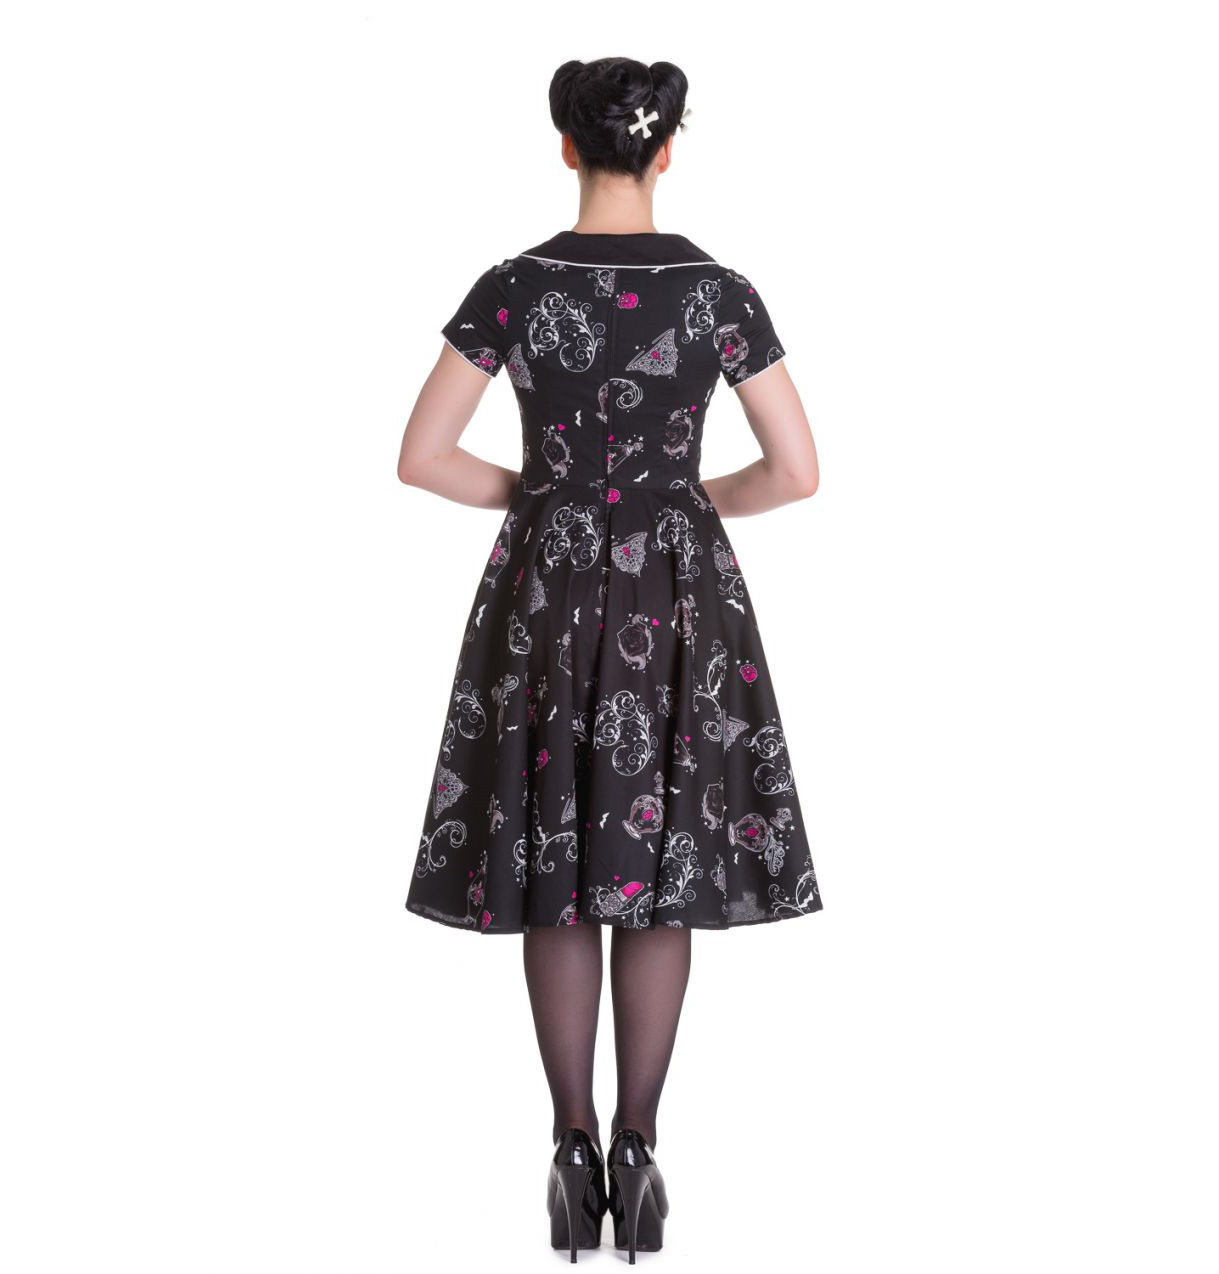 Hell-Bunny-50s-Dress-Pin-Up-Rockabilly-Black-Pink-KALONICE-Gothic-Bats-All-Sizes thumbnail 5